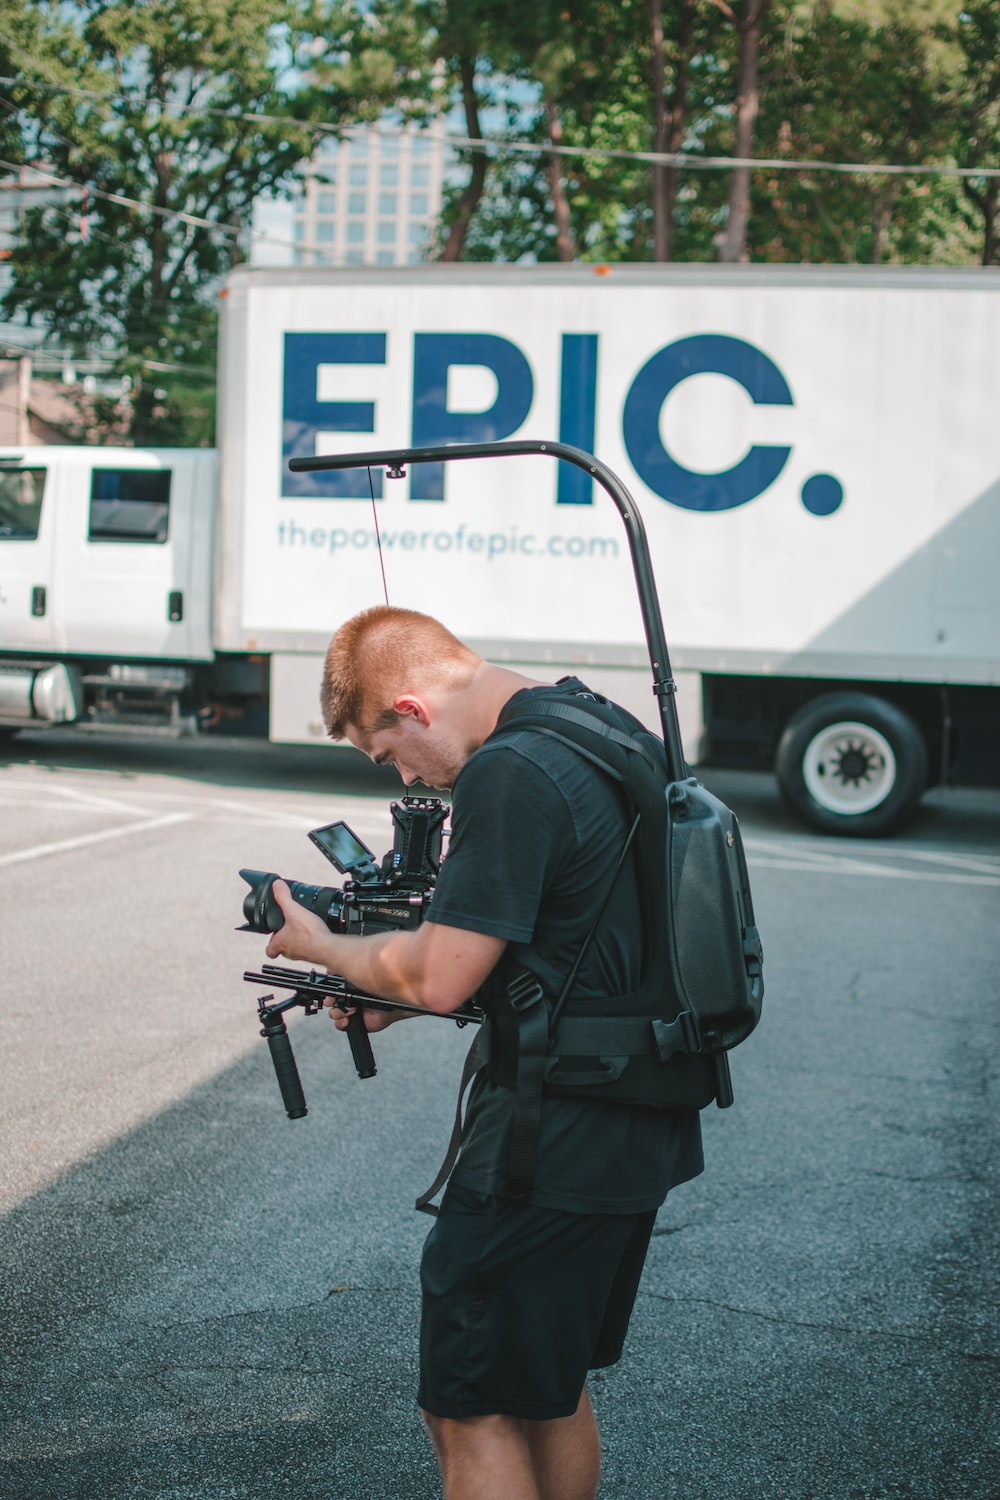 man taking photo near Epic truck